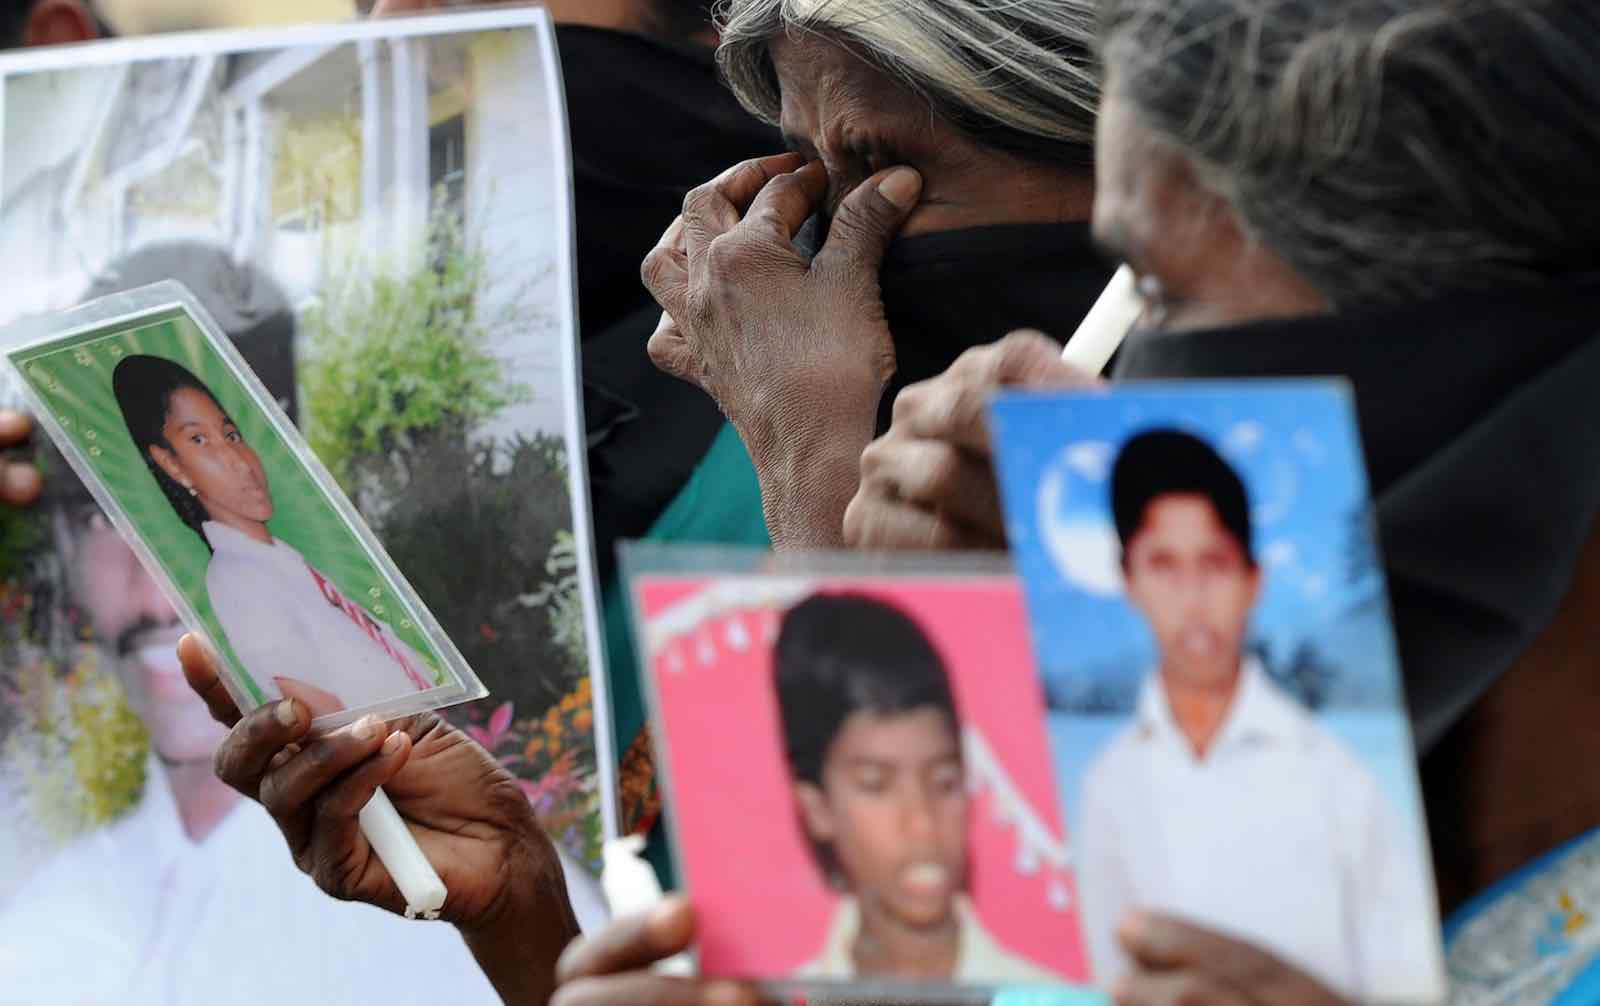 """Sri Lankan Tamil mothers from the """"Dead and Missing Person's Parents"""" group hold photographs in Jaffna, November 2013 (Photo: Lakruwan Wanniarachchi via Getty)"""